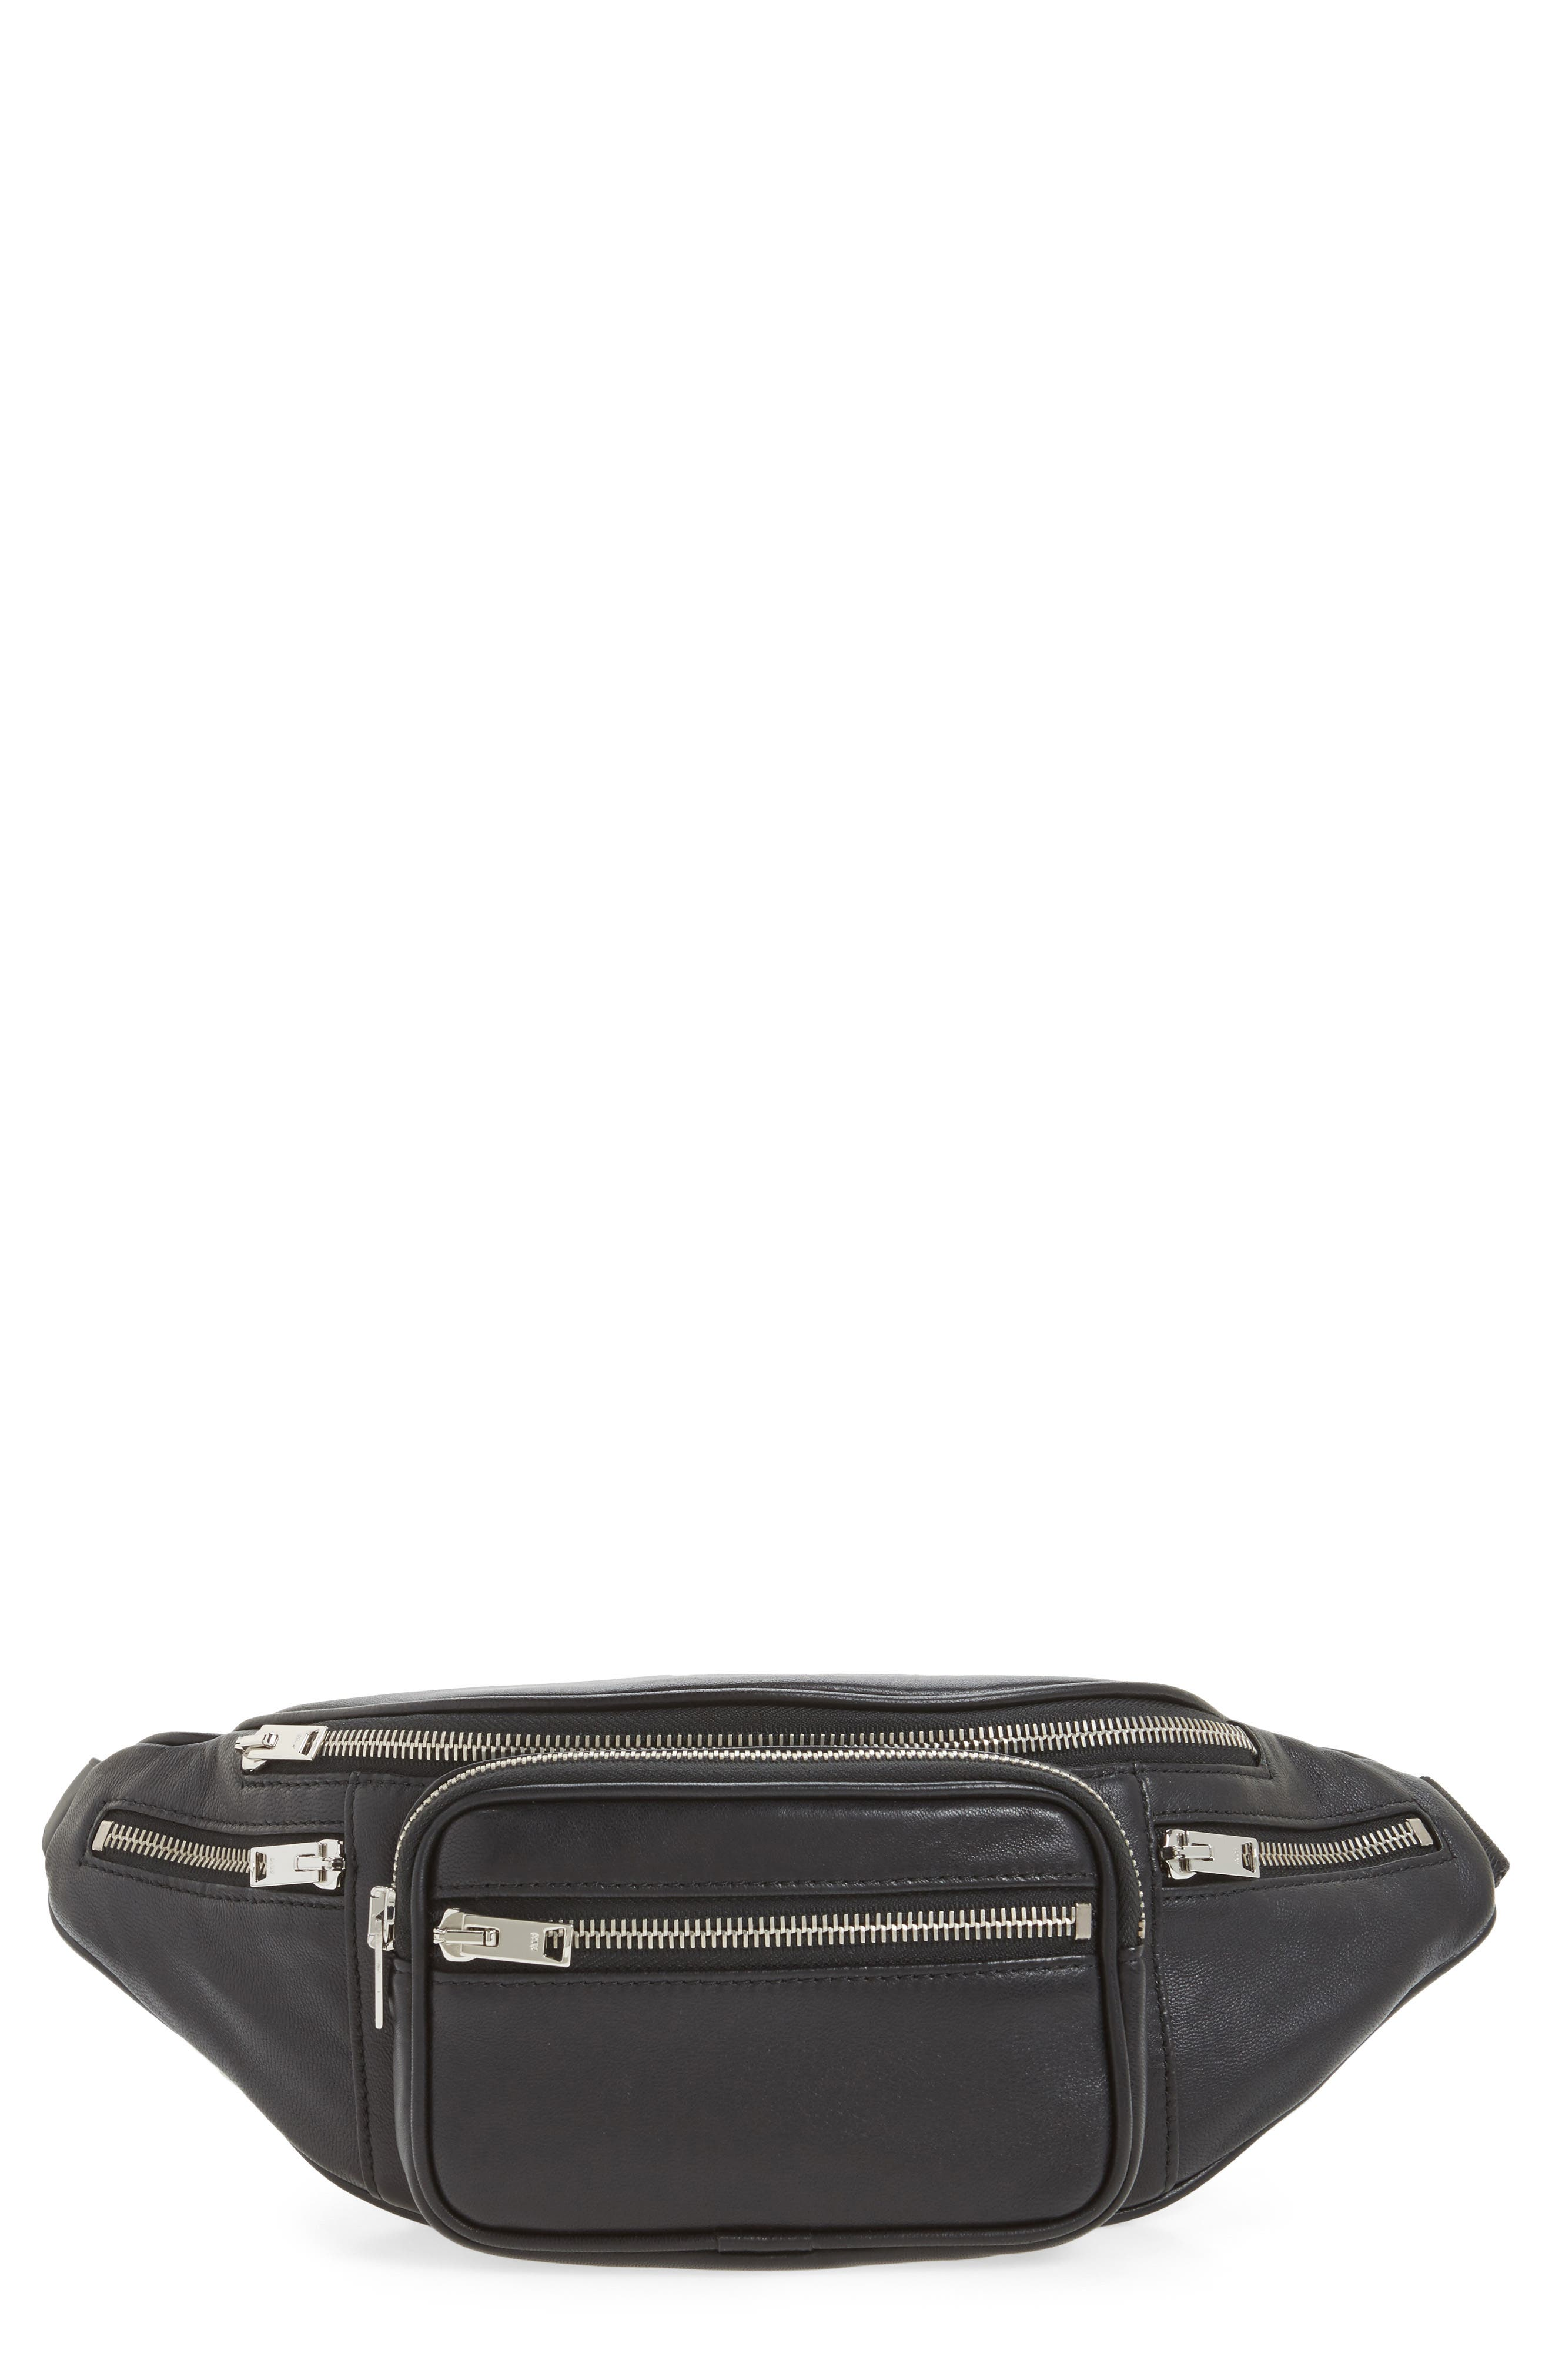 Washed Leather Fanny Pack,                             Main thumbnail 1, color,                             Black